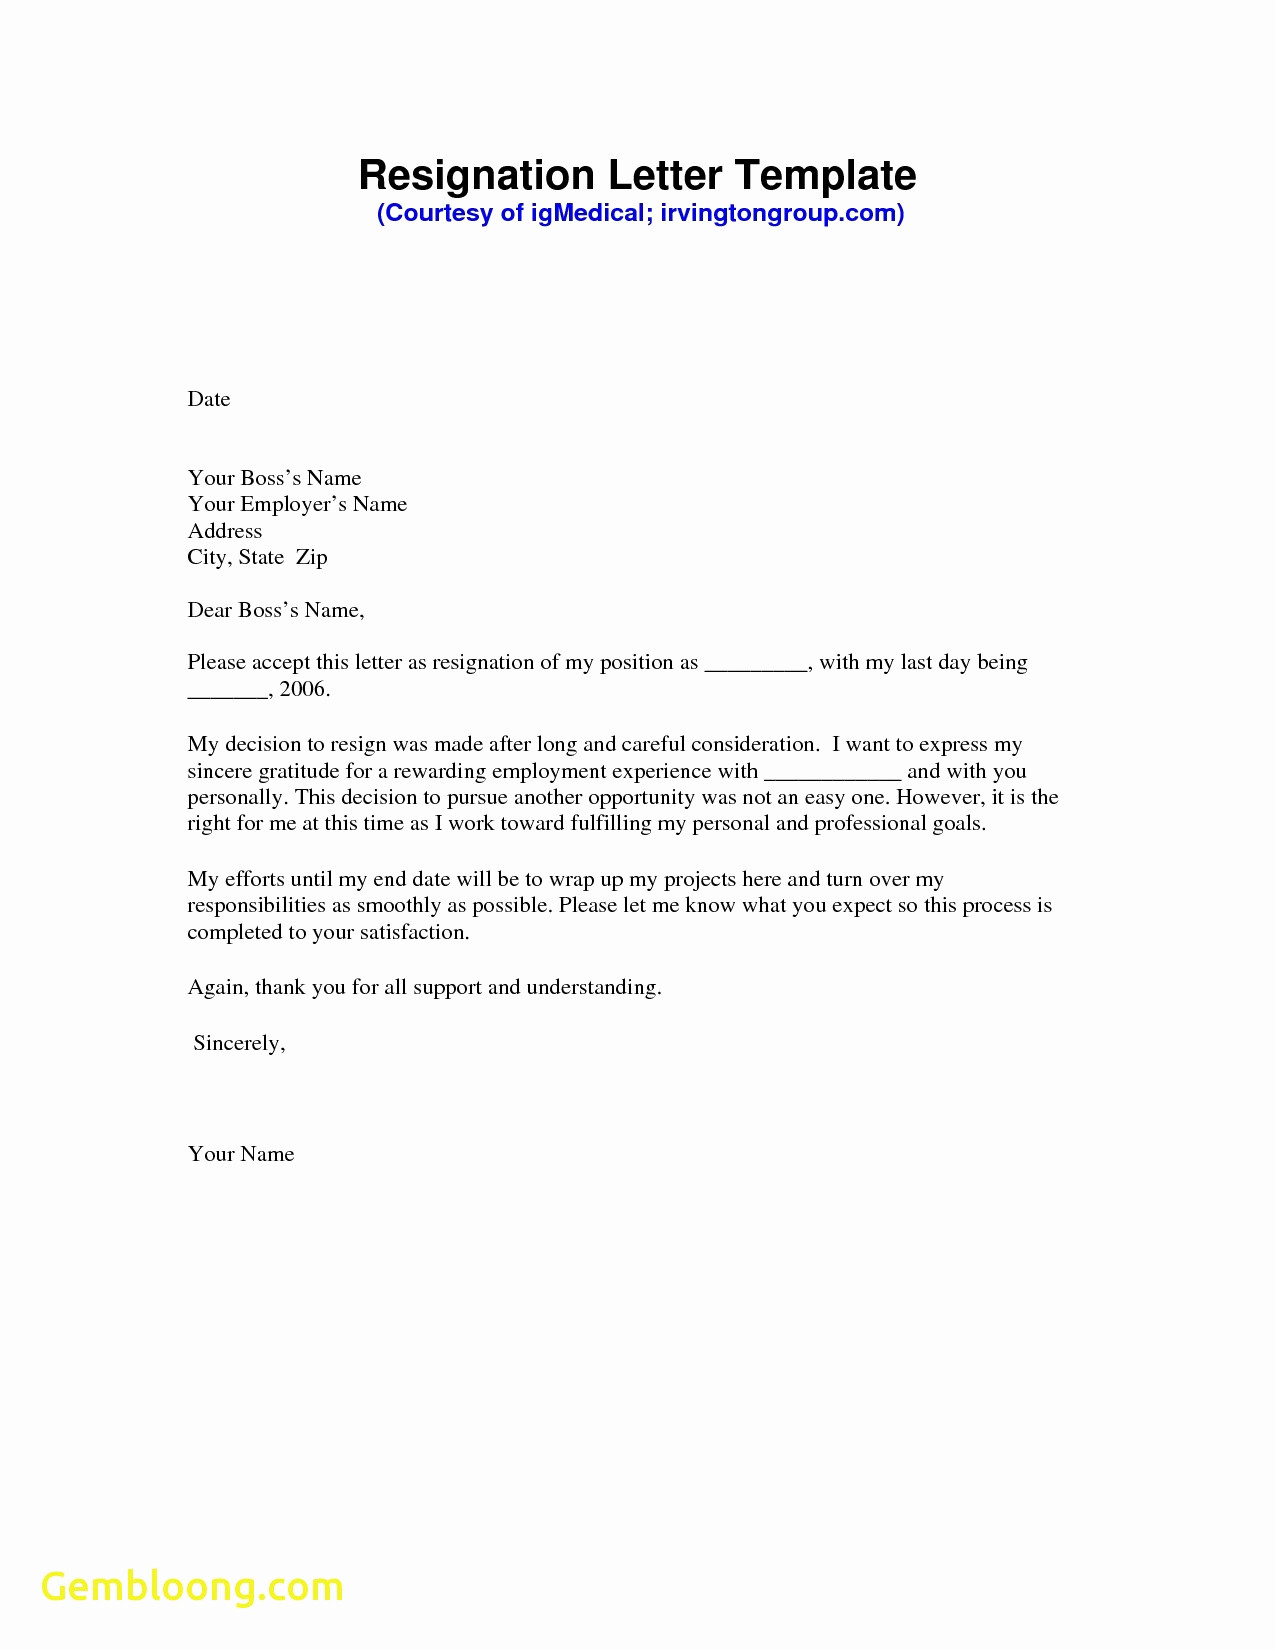 Employee Relocation Letter Template - New Employment Verification Letter Template Word